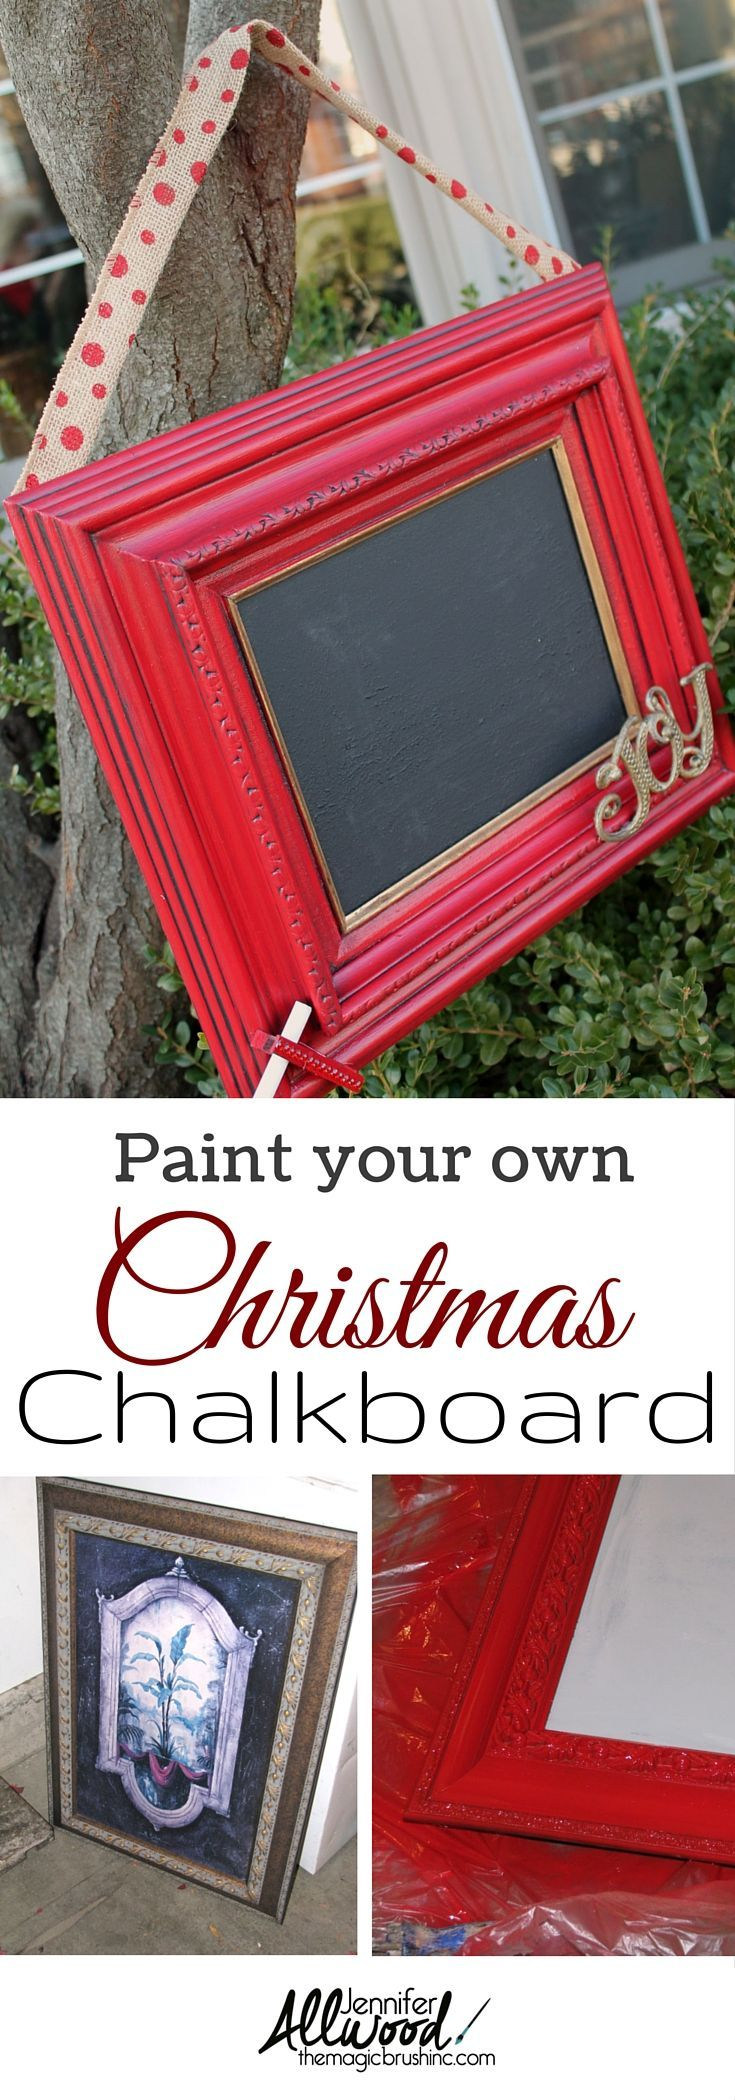 What a thoughtful Christmas gift idea! Here's how you turn an old framed piece of artwork into a fantastic holiday decoration! More DIY projects and painting tips at http://TheMagicBrushinc.com